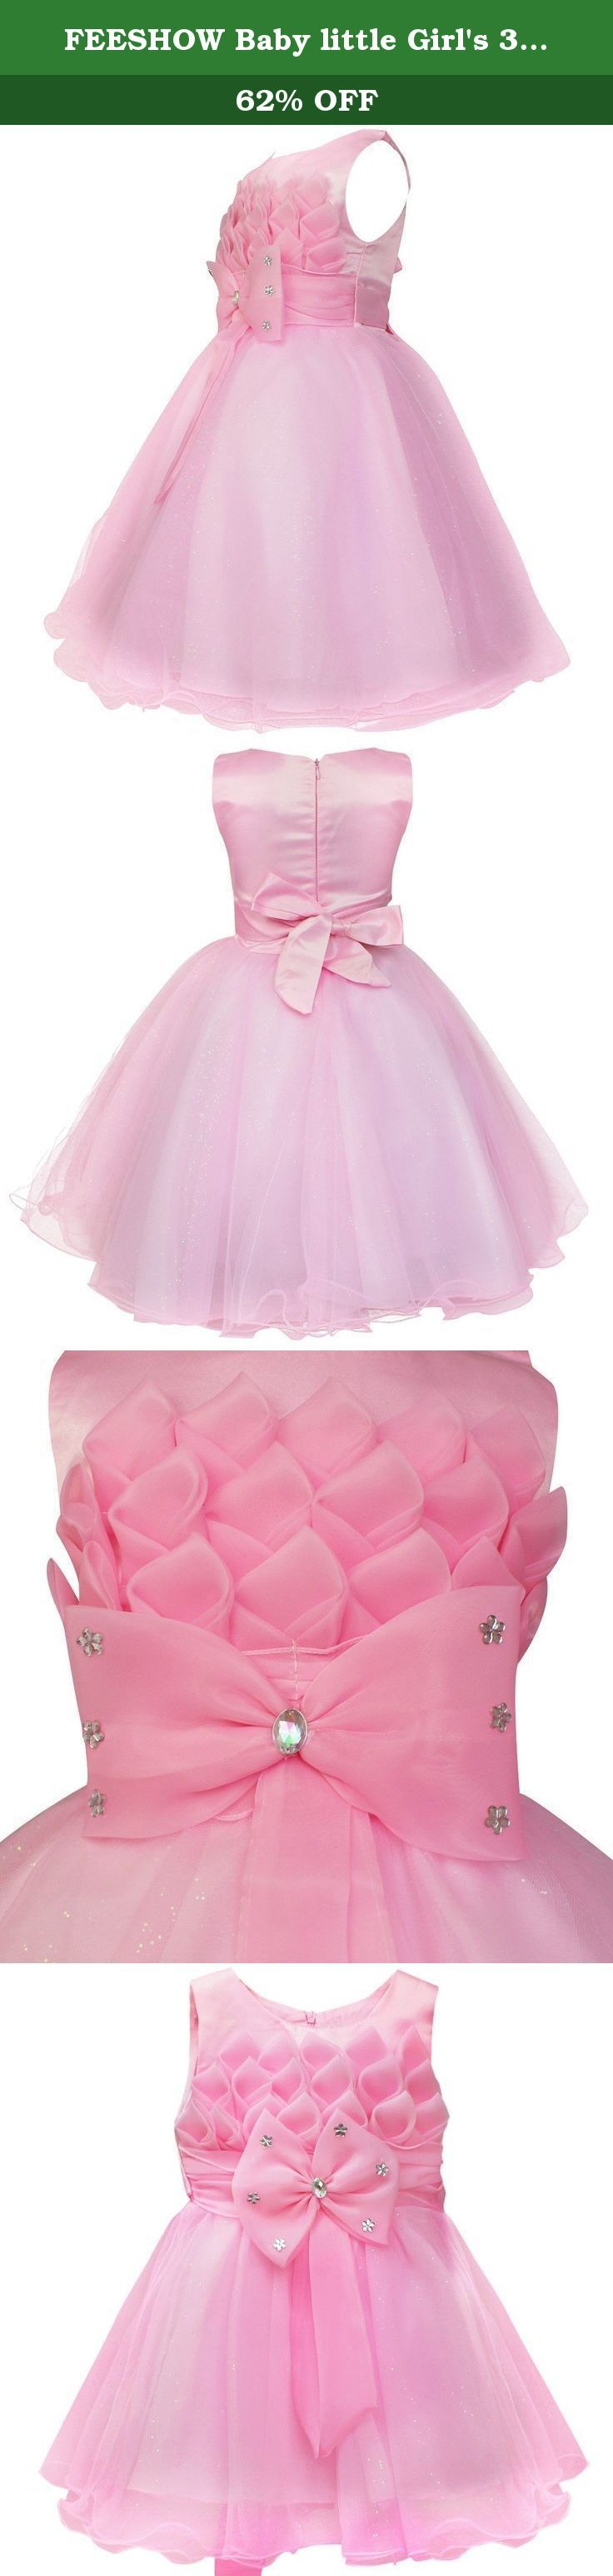 "FEESHOW Baby little Girl's 3D Lotus Flower Pageant Party Wedding Tulle Dresses Size 3T Pink. Set Include: 1pc Dress Condition: New with tag aterial: Polyester Color: As Picture Shown Size: 6 Months-6/Tag #70-120 Tag 70 6-12 Months: Chest(20.5""/52cm), Waist(20.0""/50cm), Dress Length(20.0""/50cm) Tag 80 12-18 Months: Chest(21.0""/54cm), Waist(20.5""/52cm), Dress Length(23.0""/58cm) Tag 90 2T: Chest(22.0""/56cm), Waist(21.0""/54cm), Dress Length(24.0""/60cm) Tag 100 3T: Chest(24.0""/60cm)..."